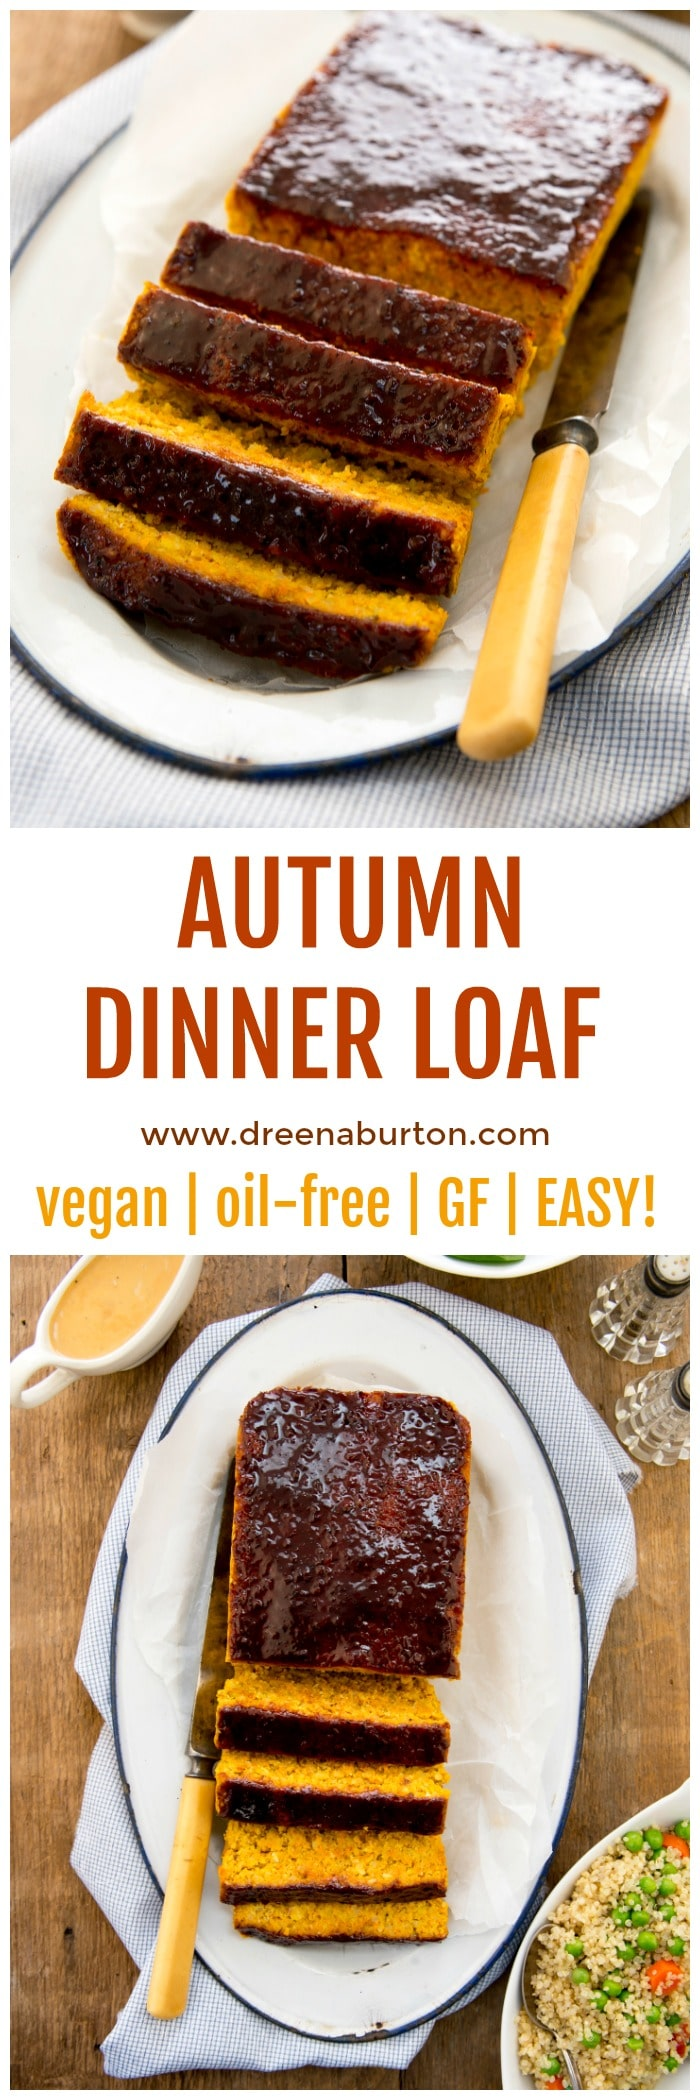 EASY and DELICIOUS VEGAN Meatloaf: Autumn Dinner Loaf | vegan dinner recipes | vegan meat substitutes | vegan recipe ideas | how to make a vegan meatloaf | vegan recipe ideas | meatloaf recipe vegan | homemade vegan recipes || Plant Powered Kitchen #vegandinner